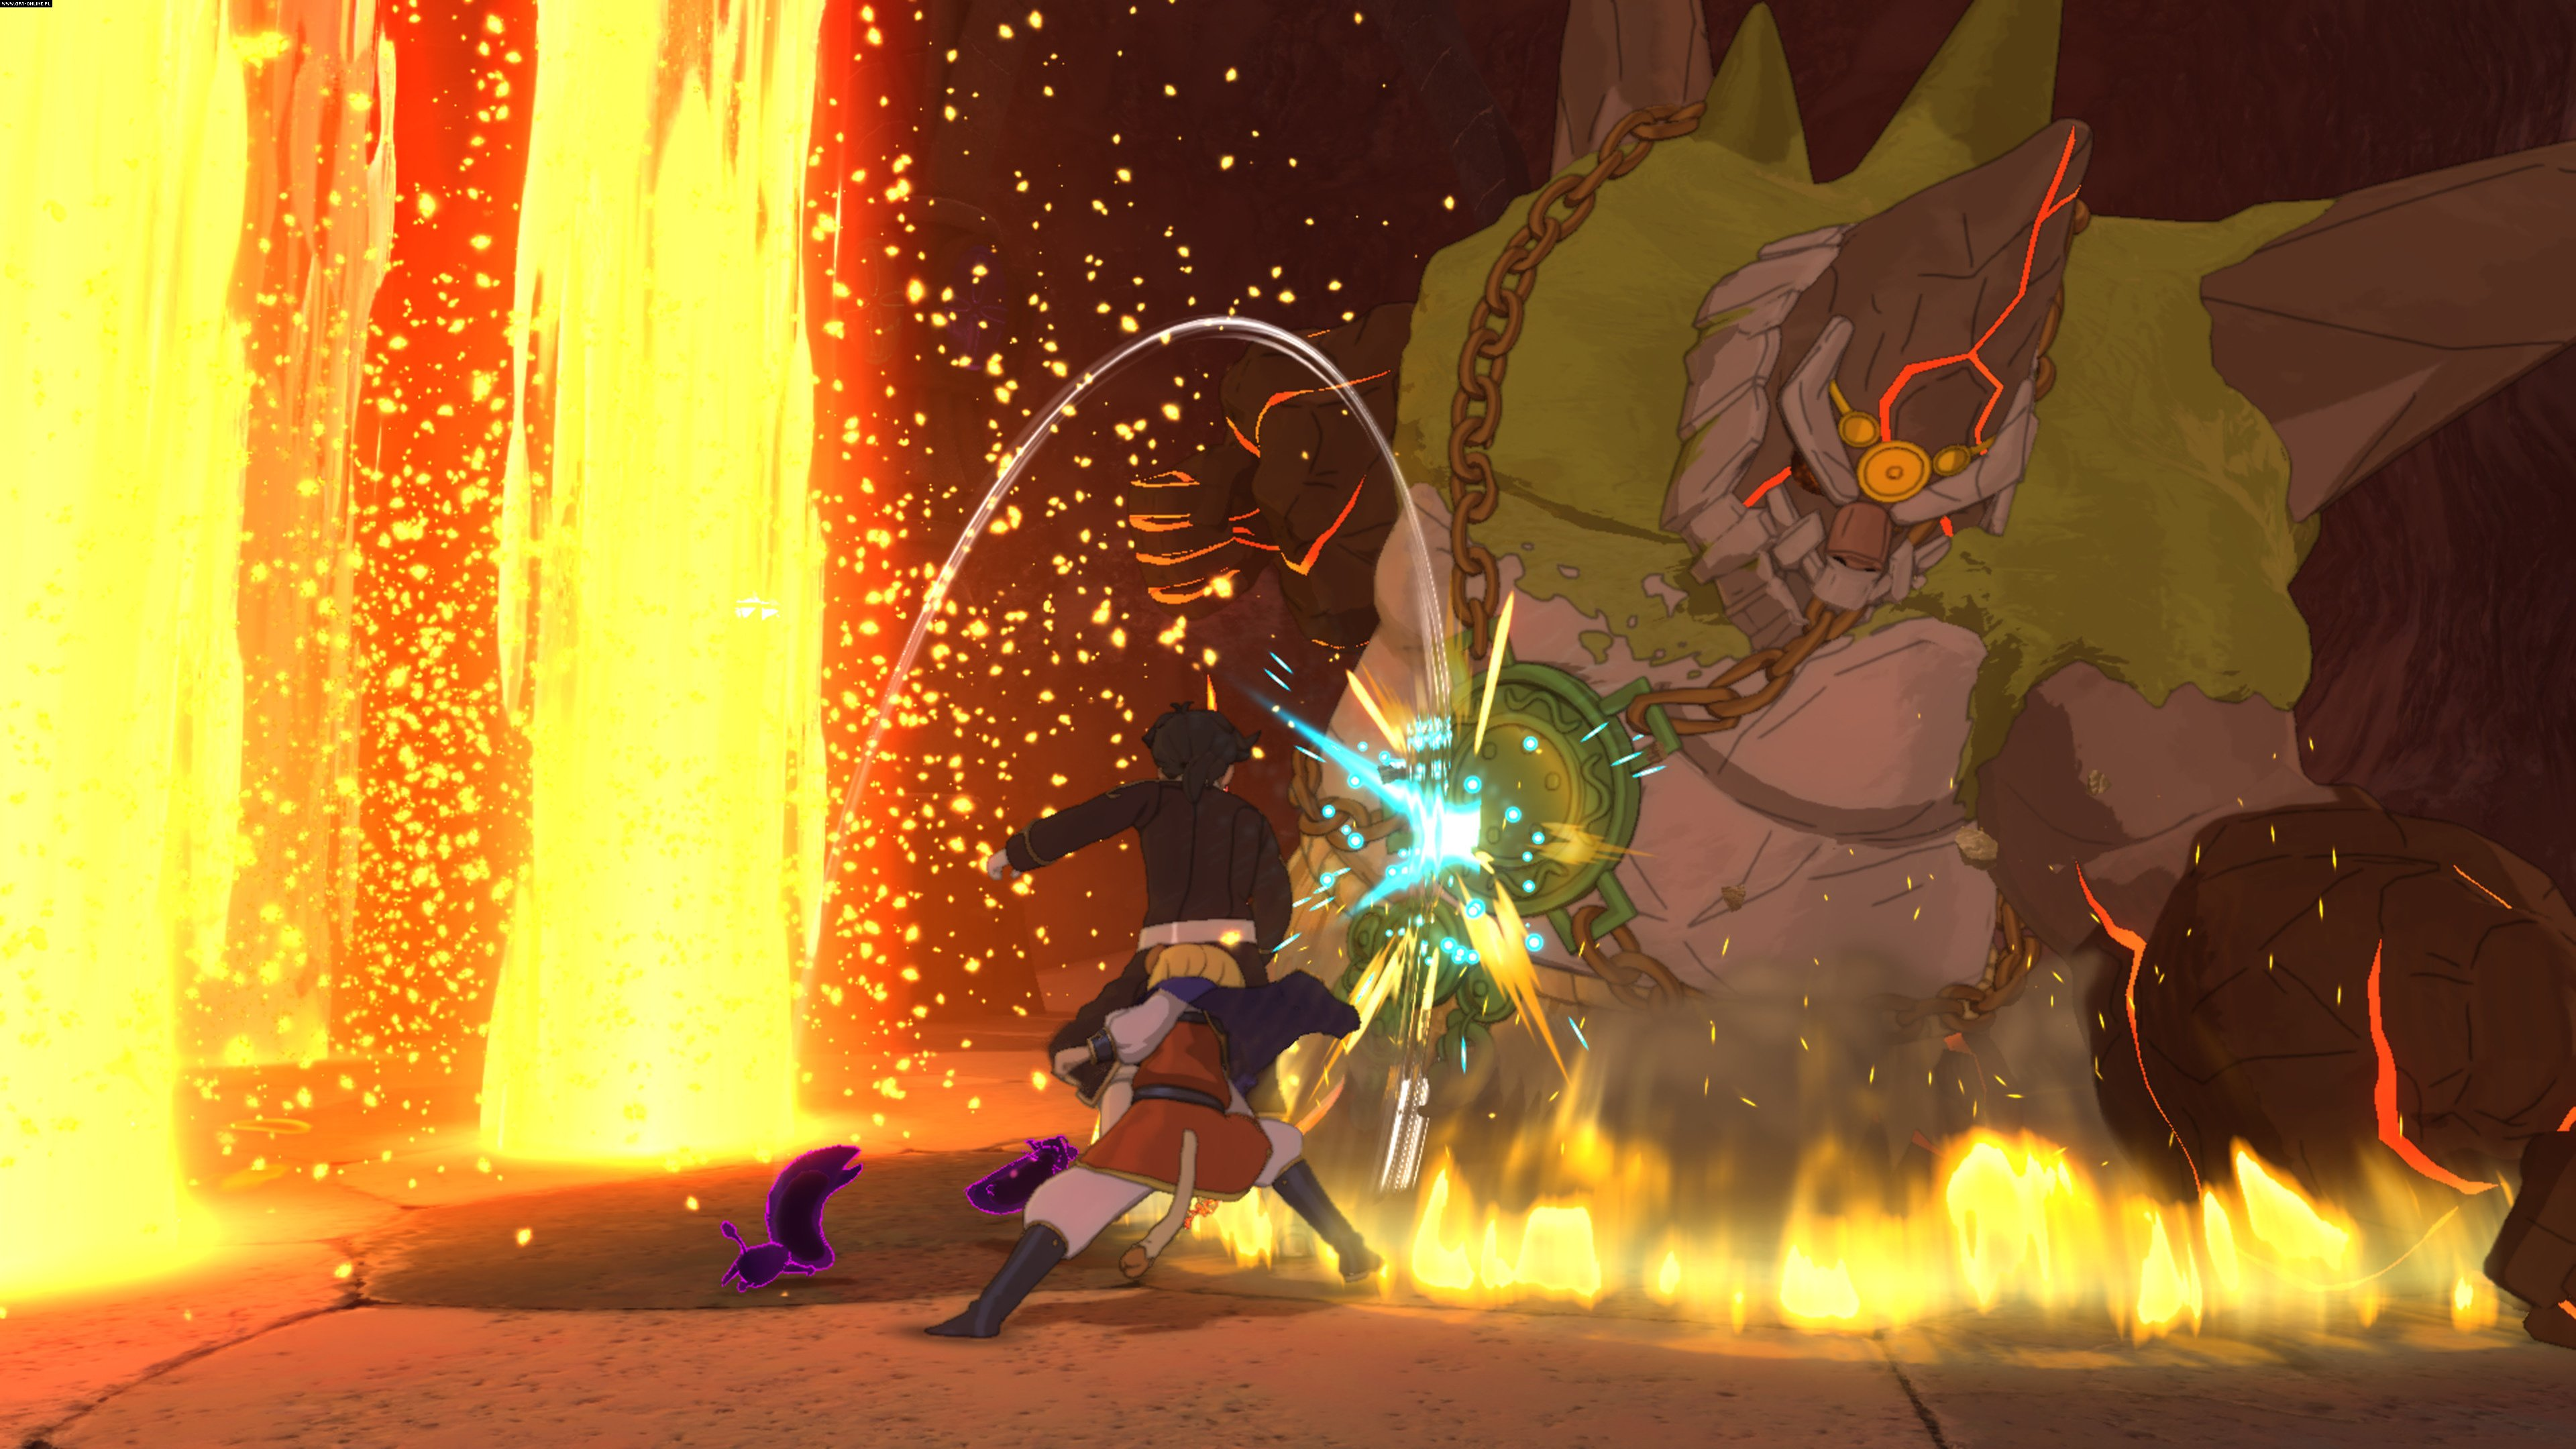 Ni no Kuni II: Revenant Kingdom PC, PS4 Gry Screen 3/112, Level 5, Bandai Namco Entertainment